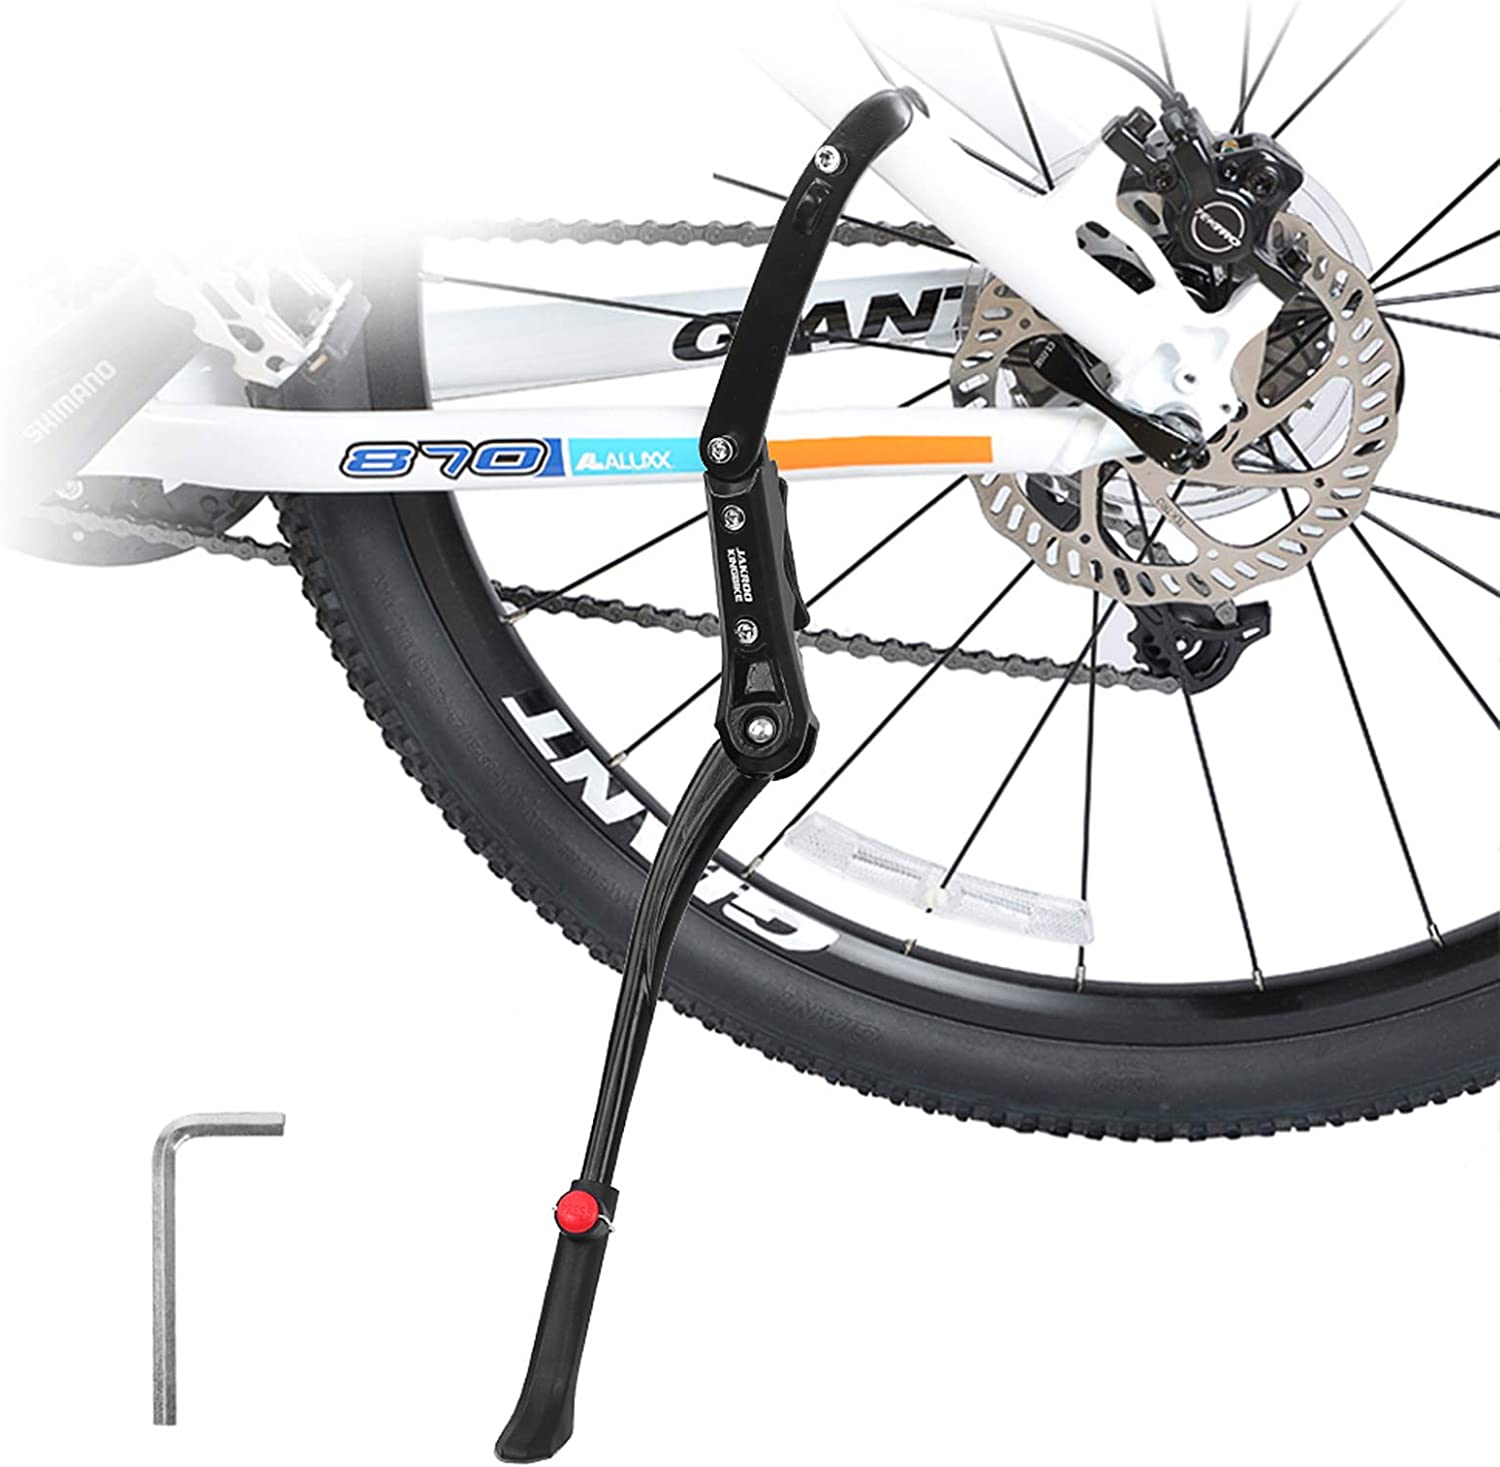 Farway Bike Kickstand Adjustable Fresno Mall Adult Rear Mount Outlet SALE Alloy Aluminum